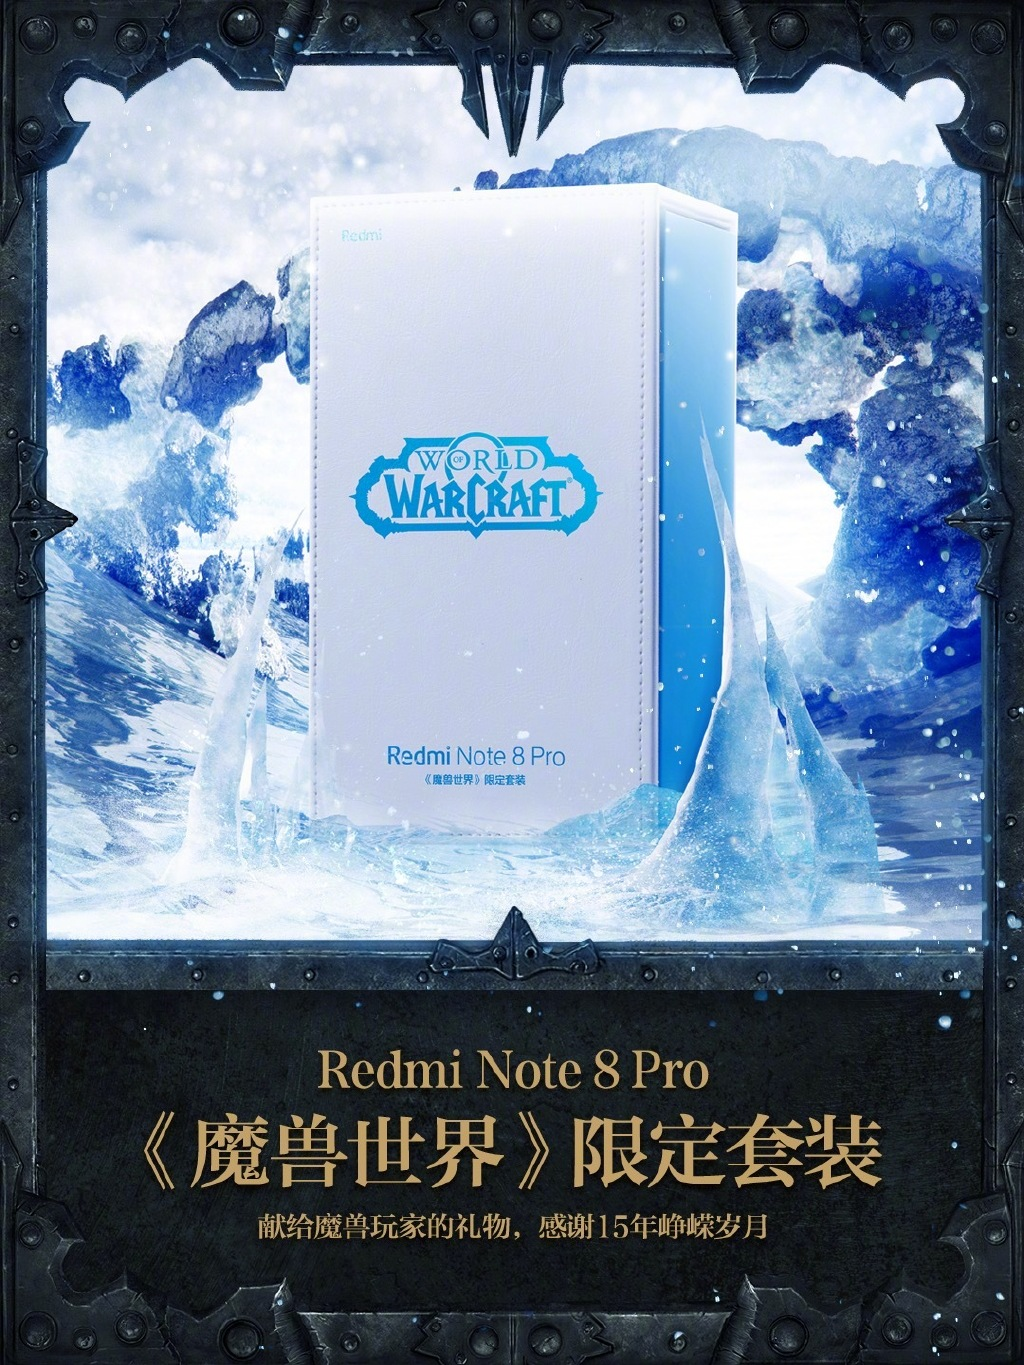 Redmi-Note-8-Pro-World-of-Warcraft-Limited-Edition-b